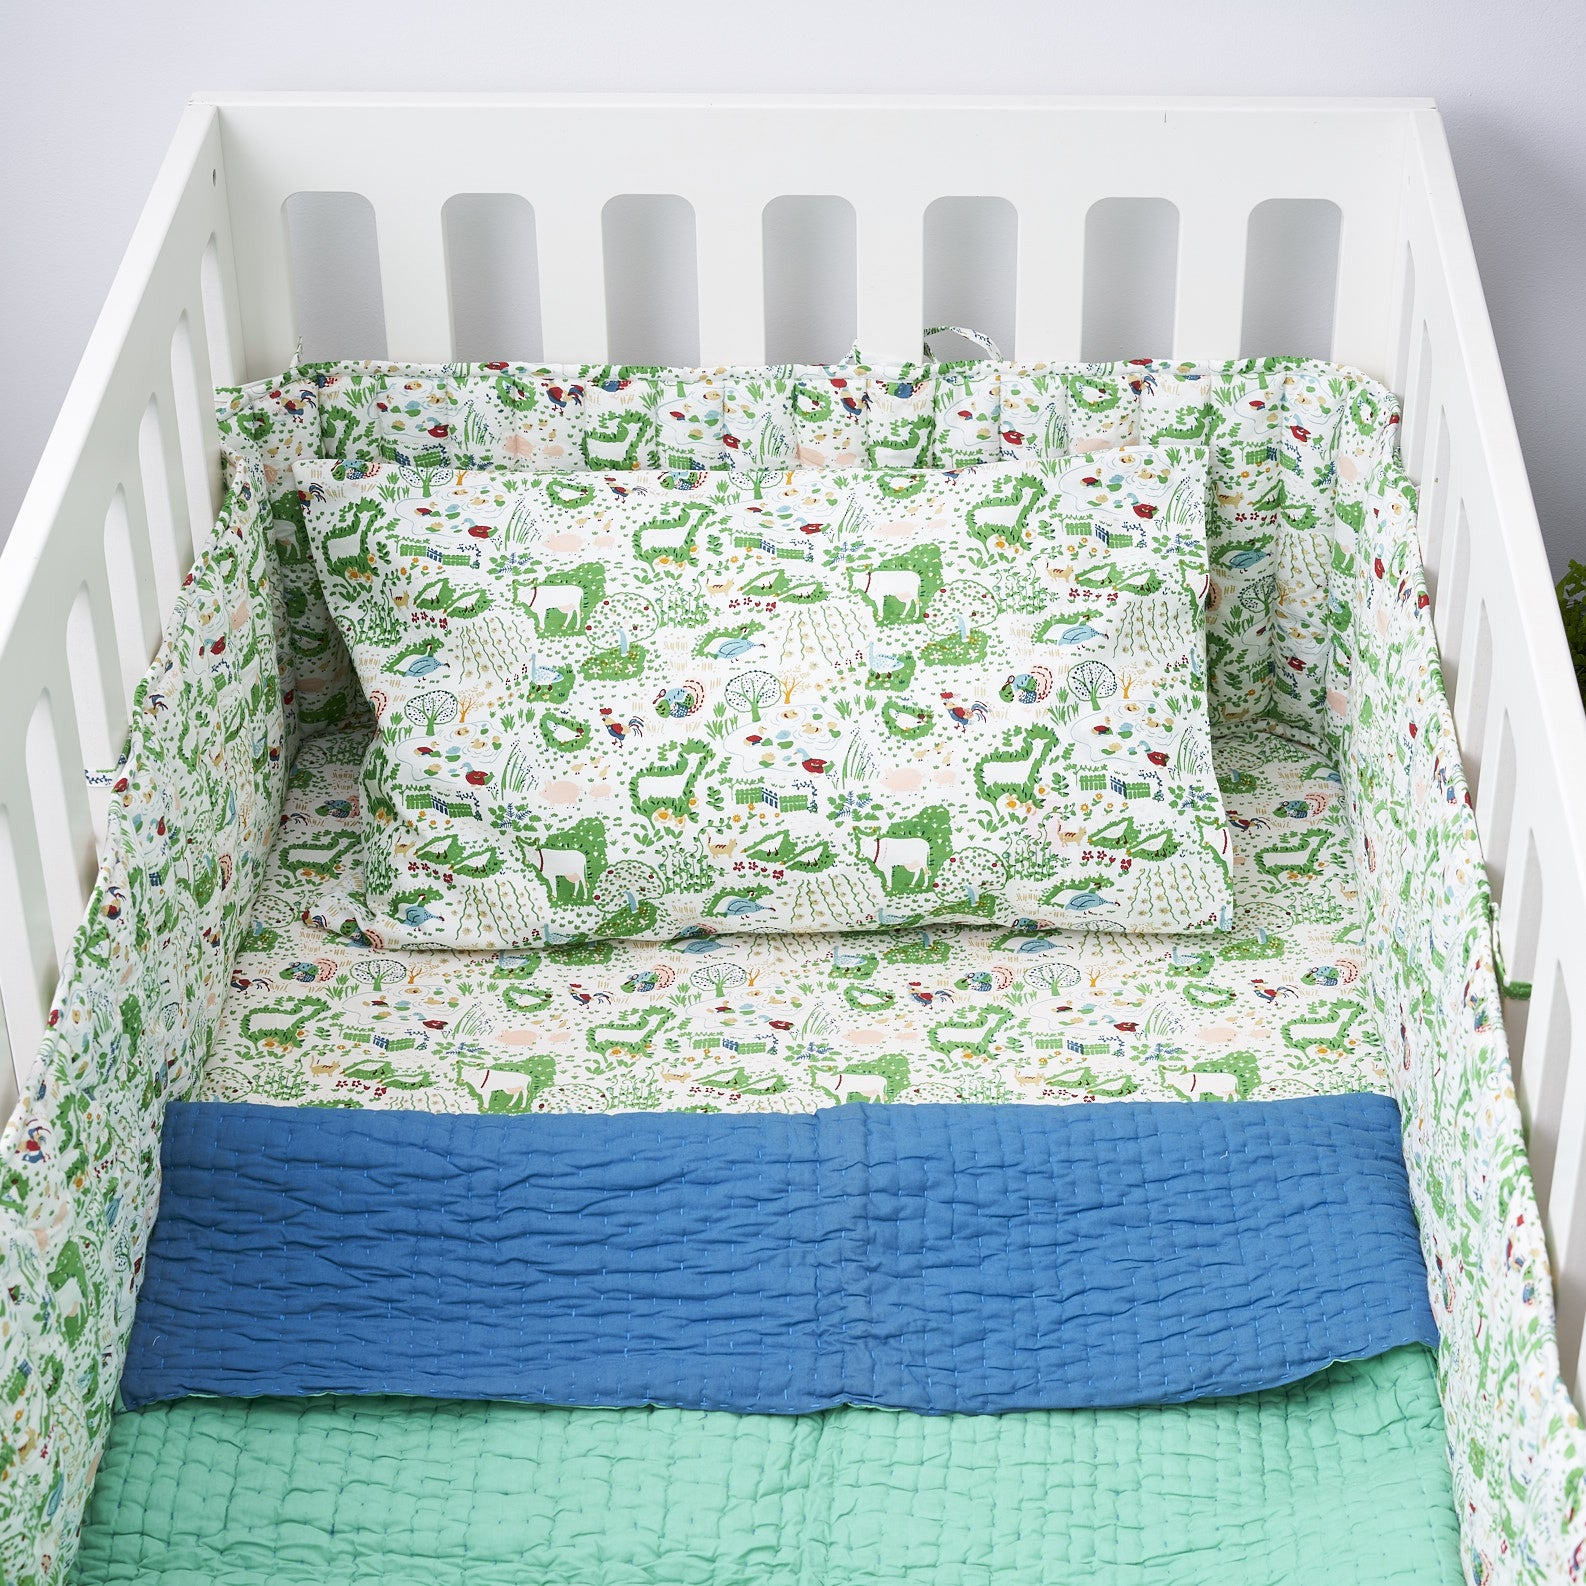 Farm yard cot bed fitted sheet